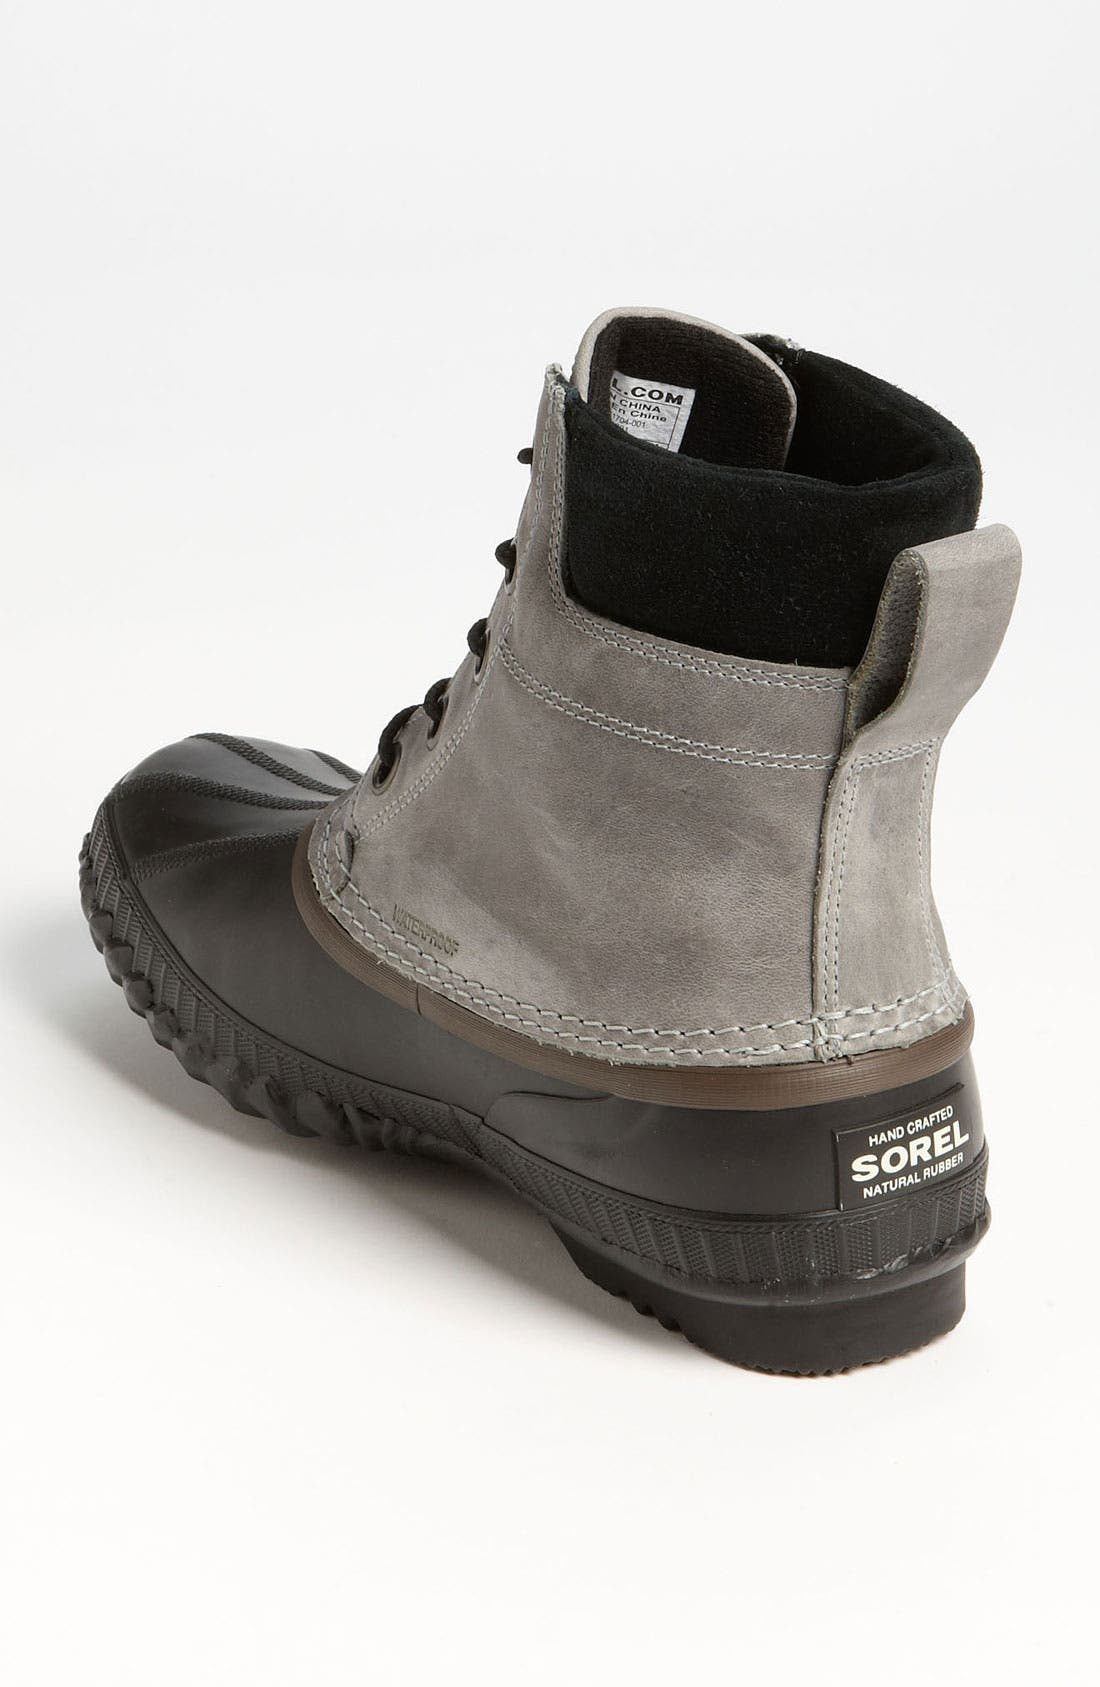 SOREL, Cheyanne' Snow Boot, Alternate thumbnail 4, color, 020